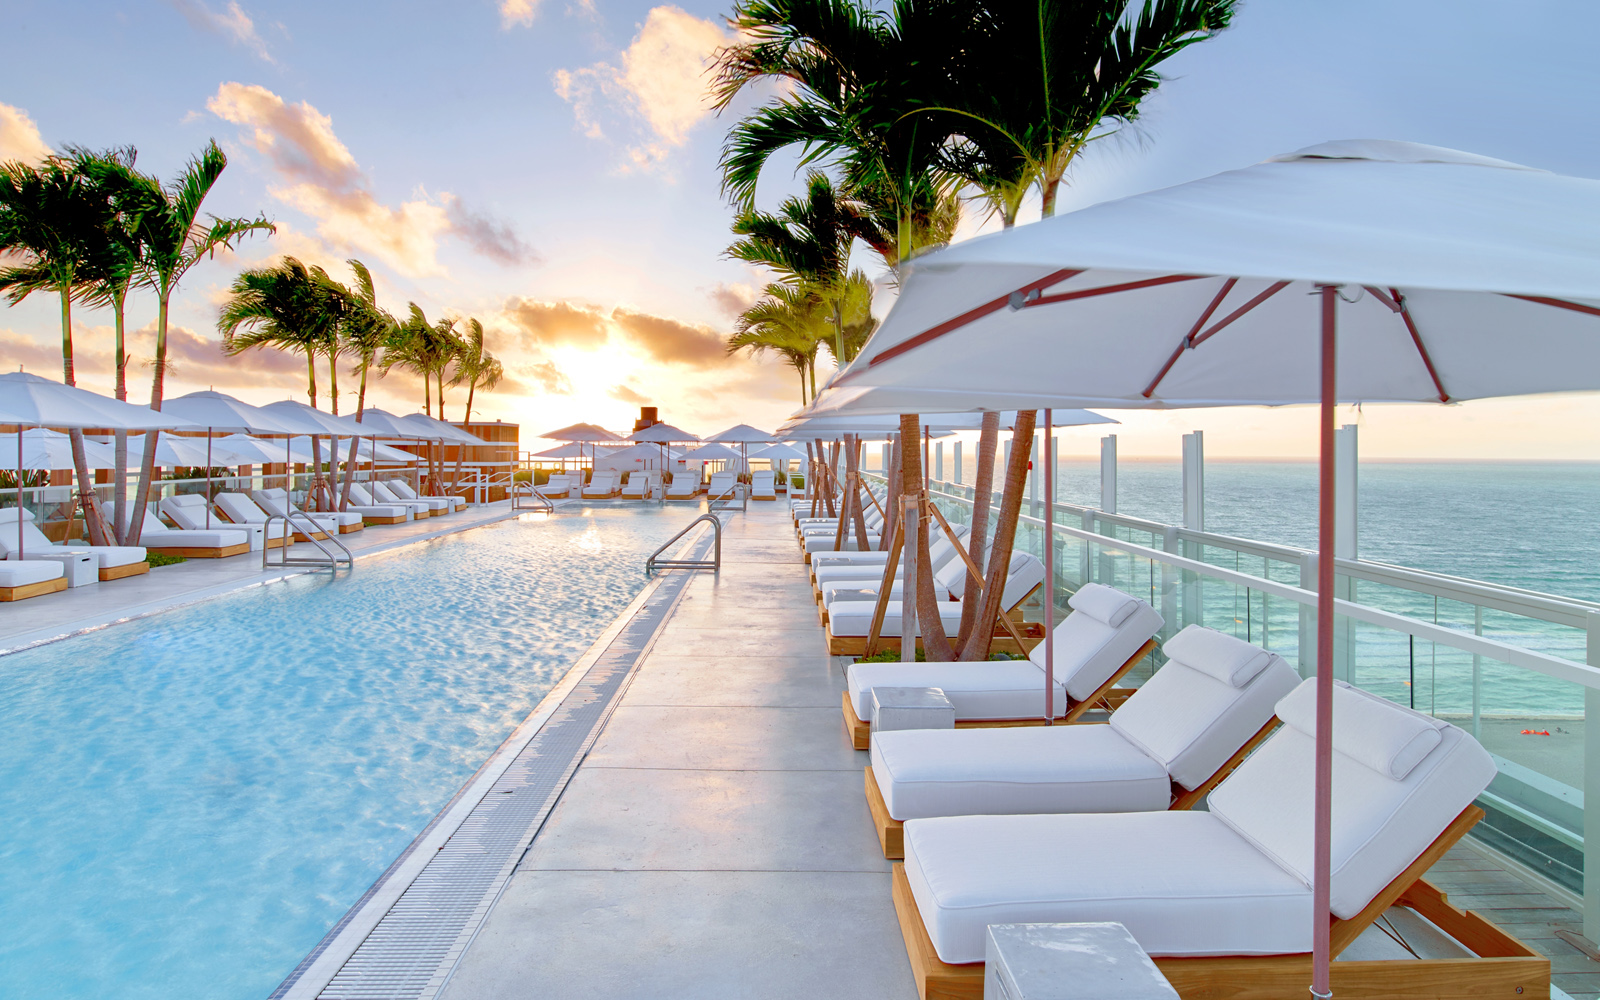 1 Hotel South Beach Rooftop/ see more  here